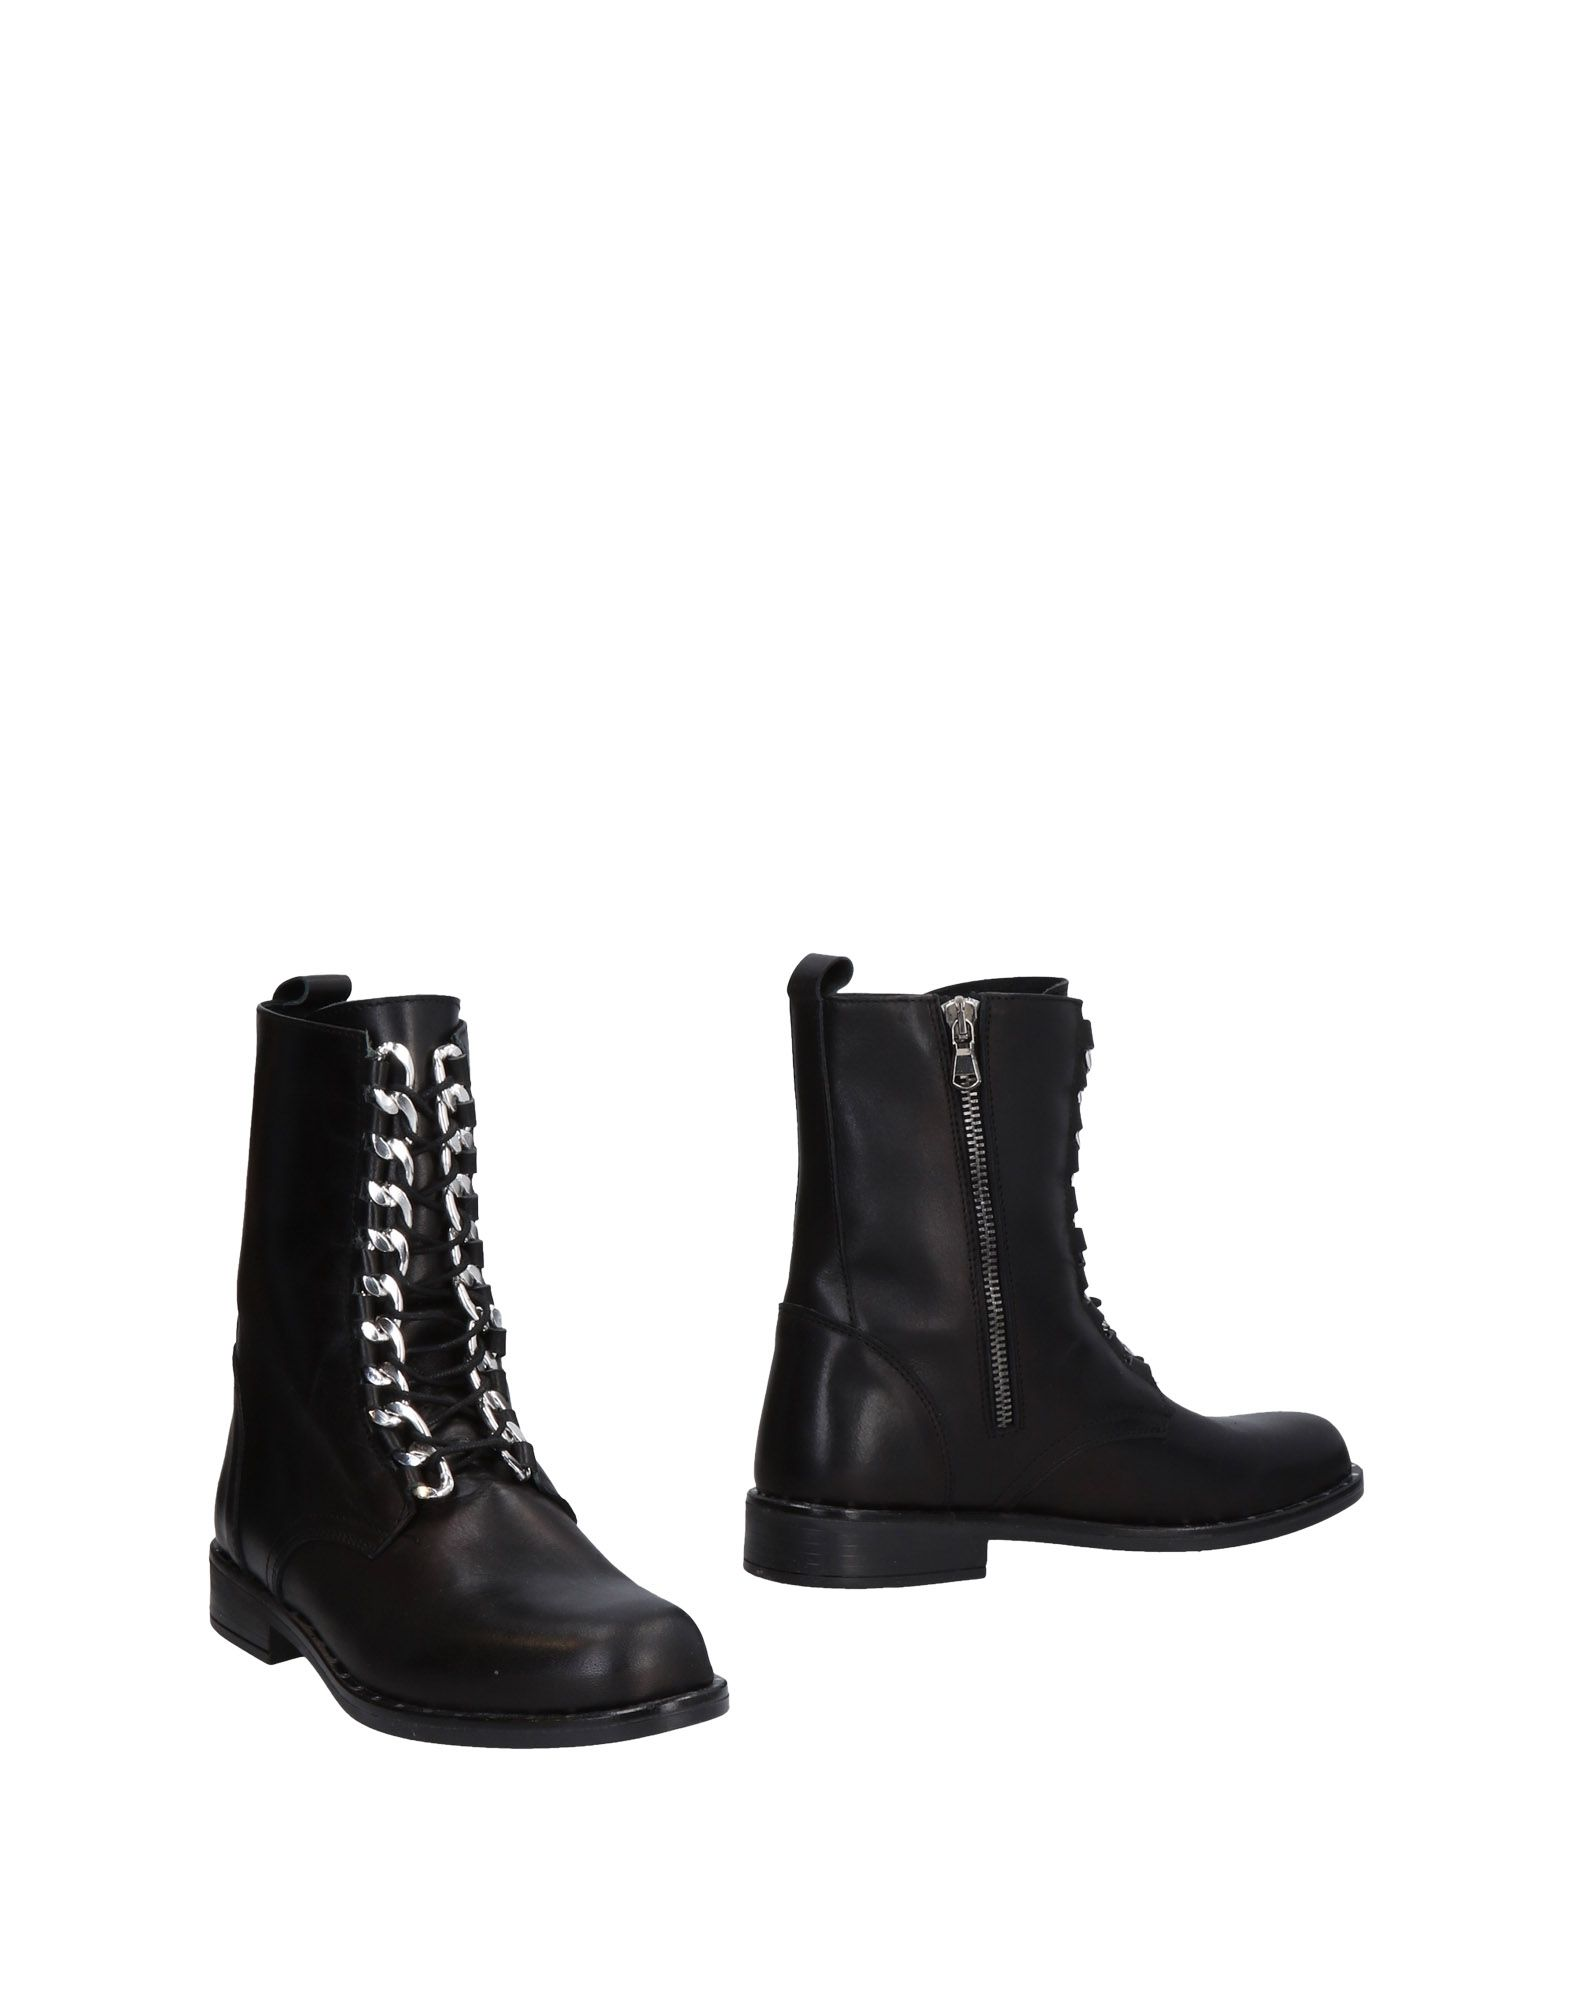 Geneve Ankle Boot - Women Geneve Ankle Boots - online on  Canada - Boots 11470286XQ 256db0